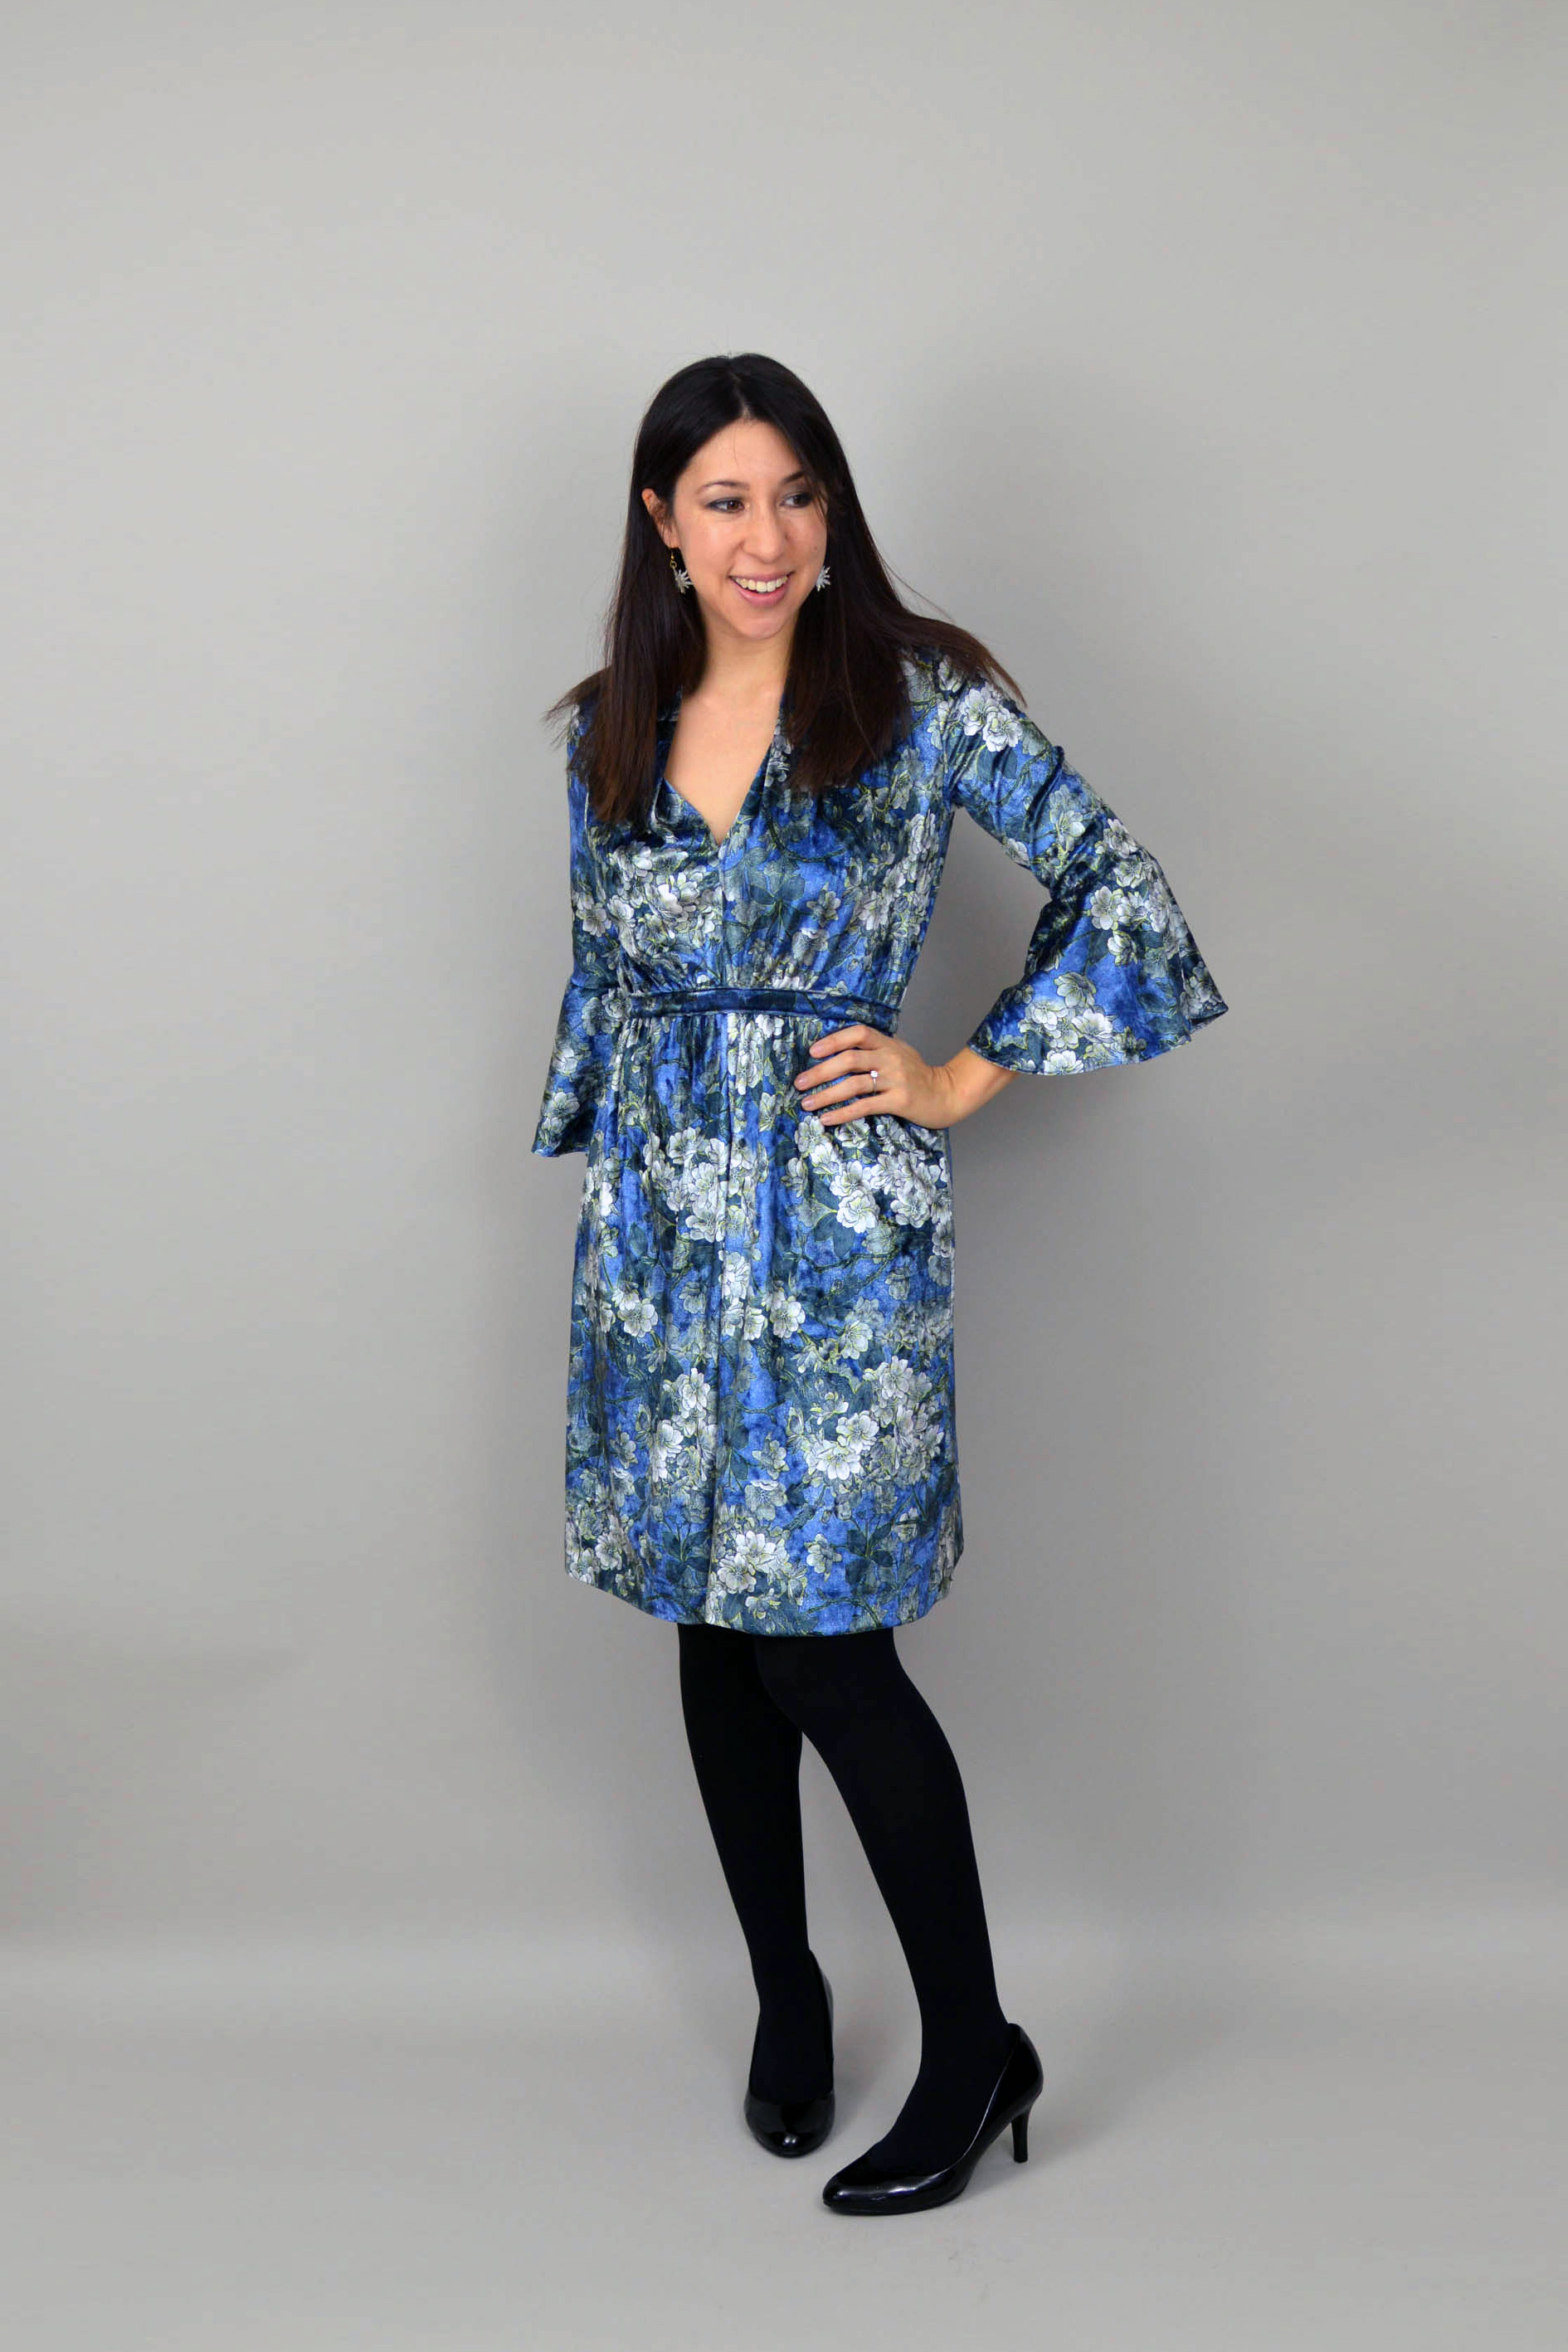 Blue velvet Mayfair dress with frill sleeves, and black shoes and tights